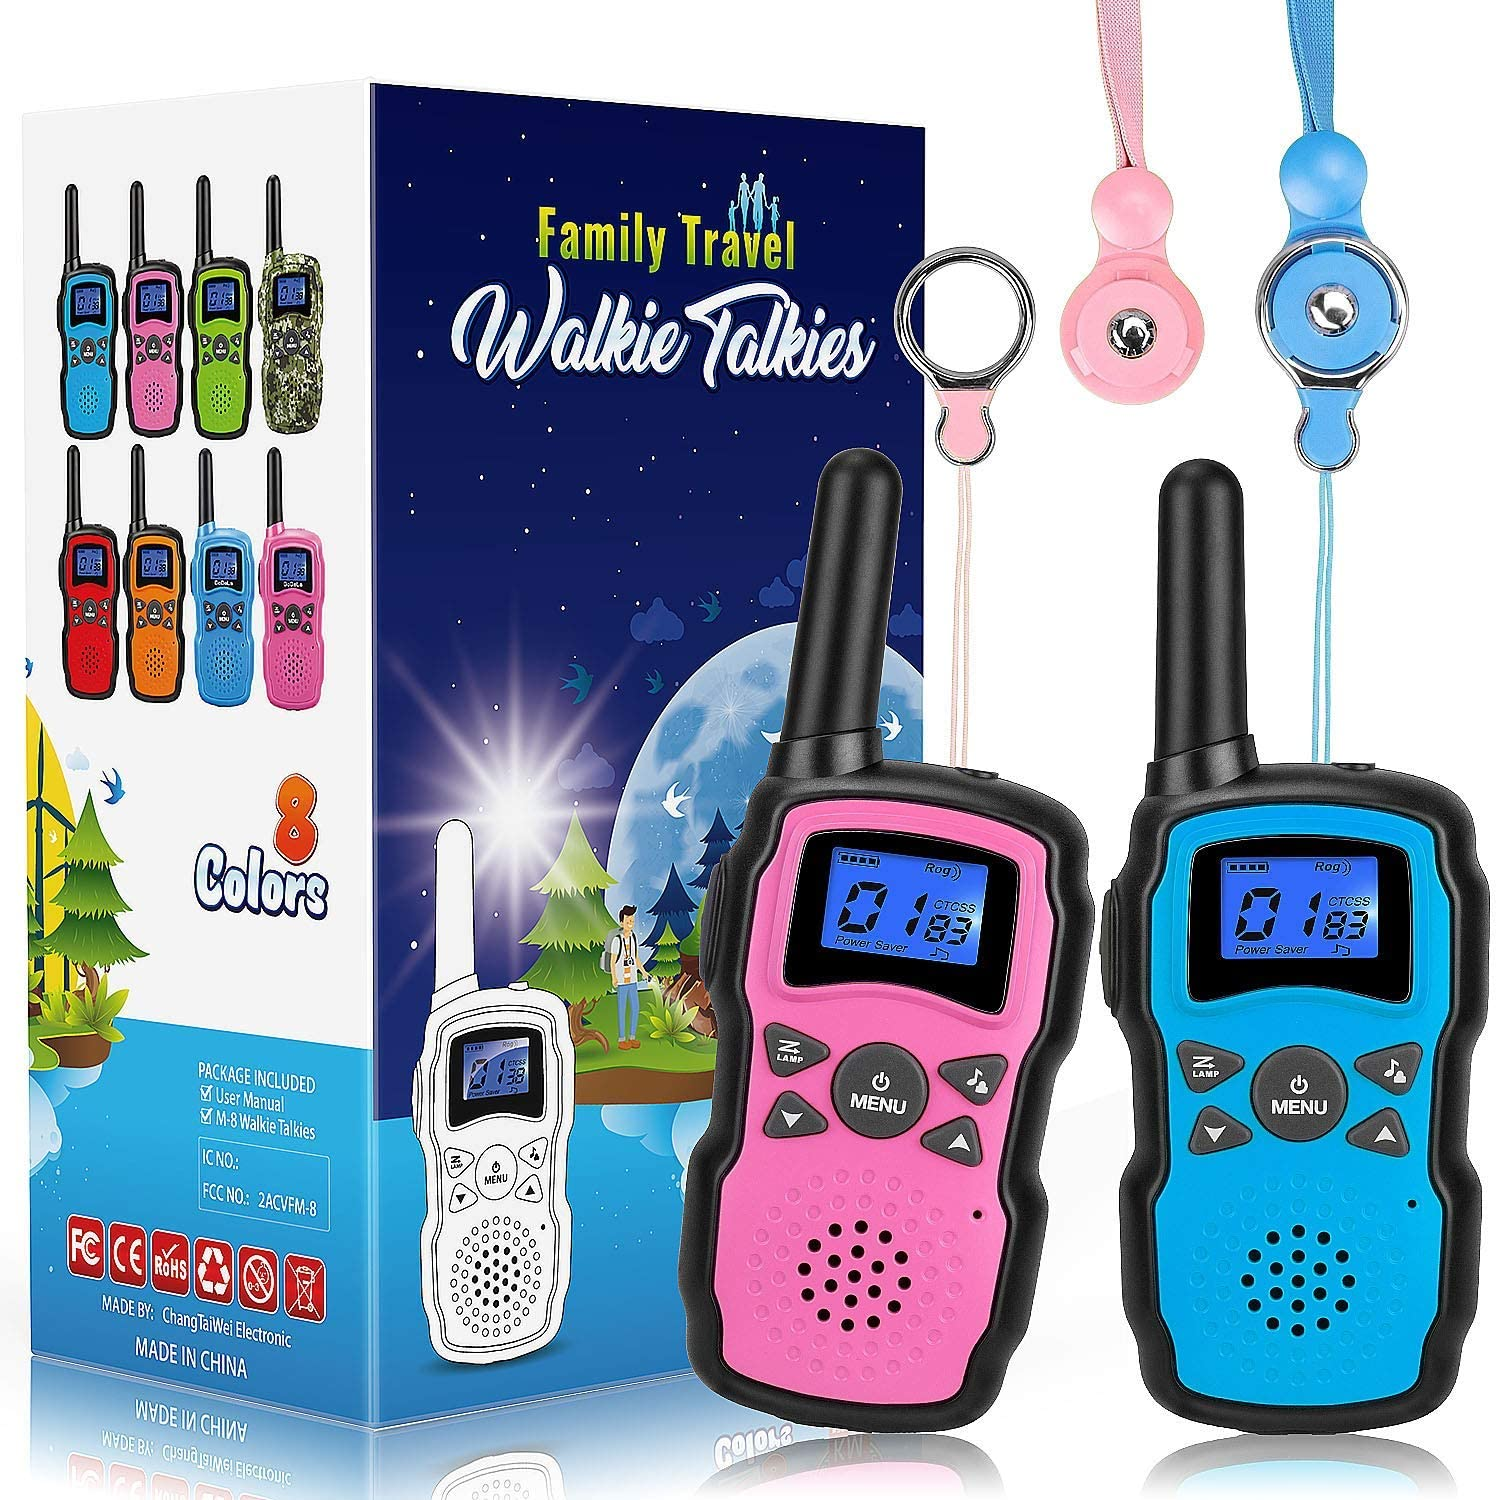 Wishouse walkie talkies for cruise